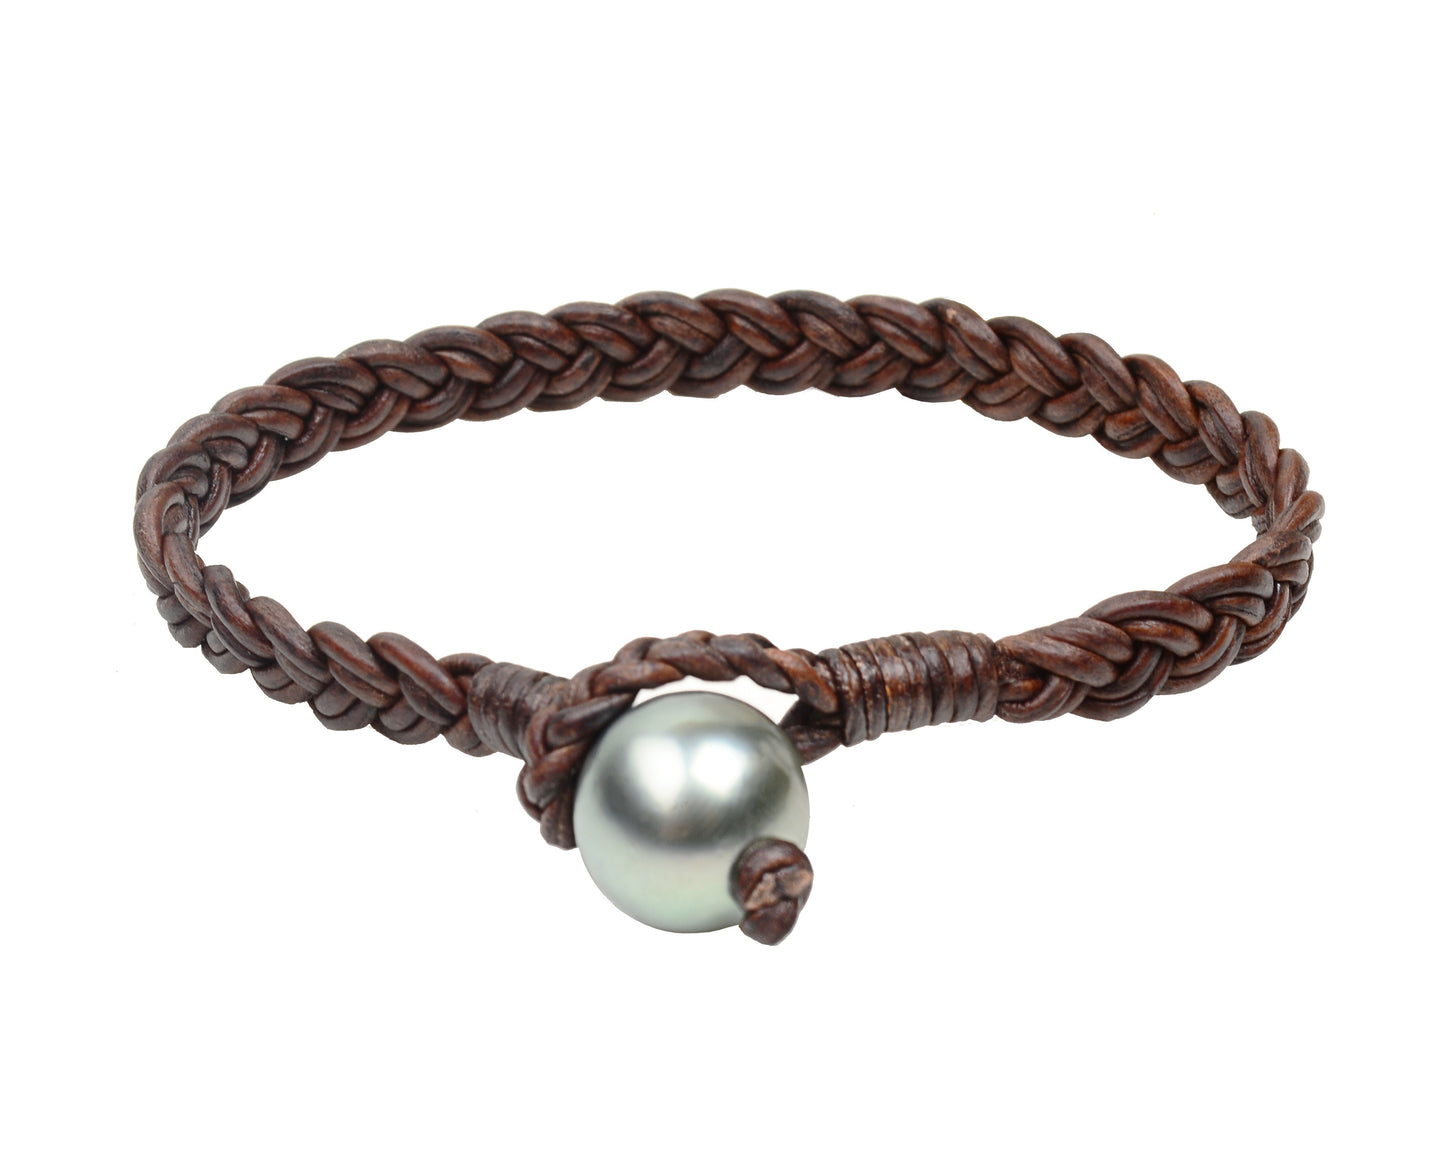 Flat Braid Bracelet Tahitian Designer Pearl And Leather